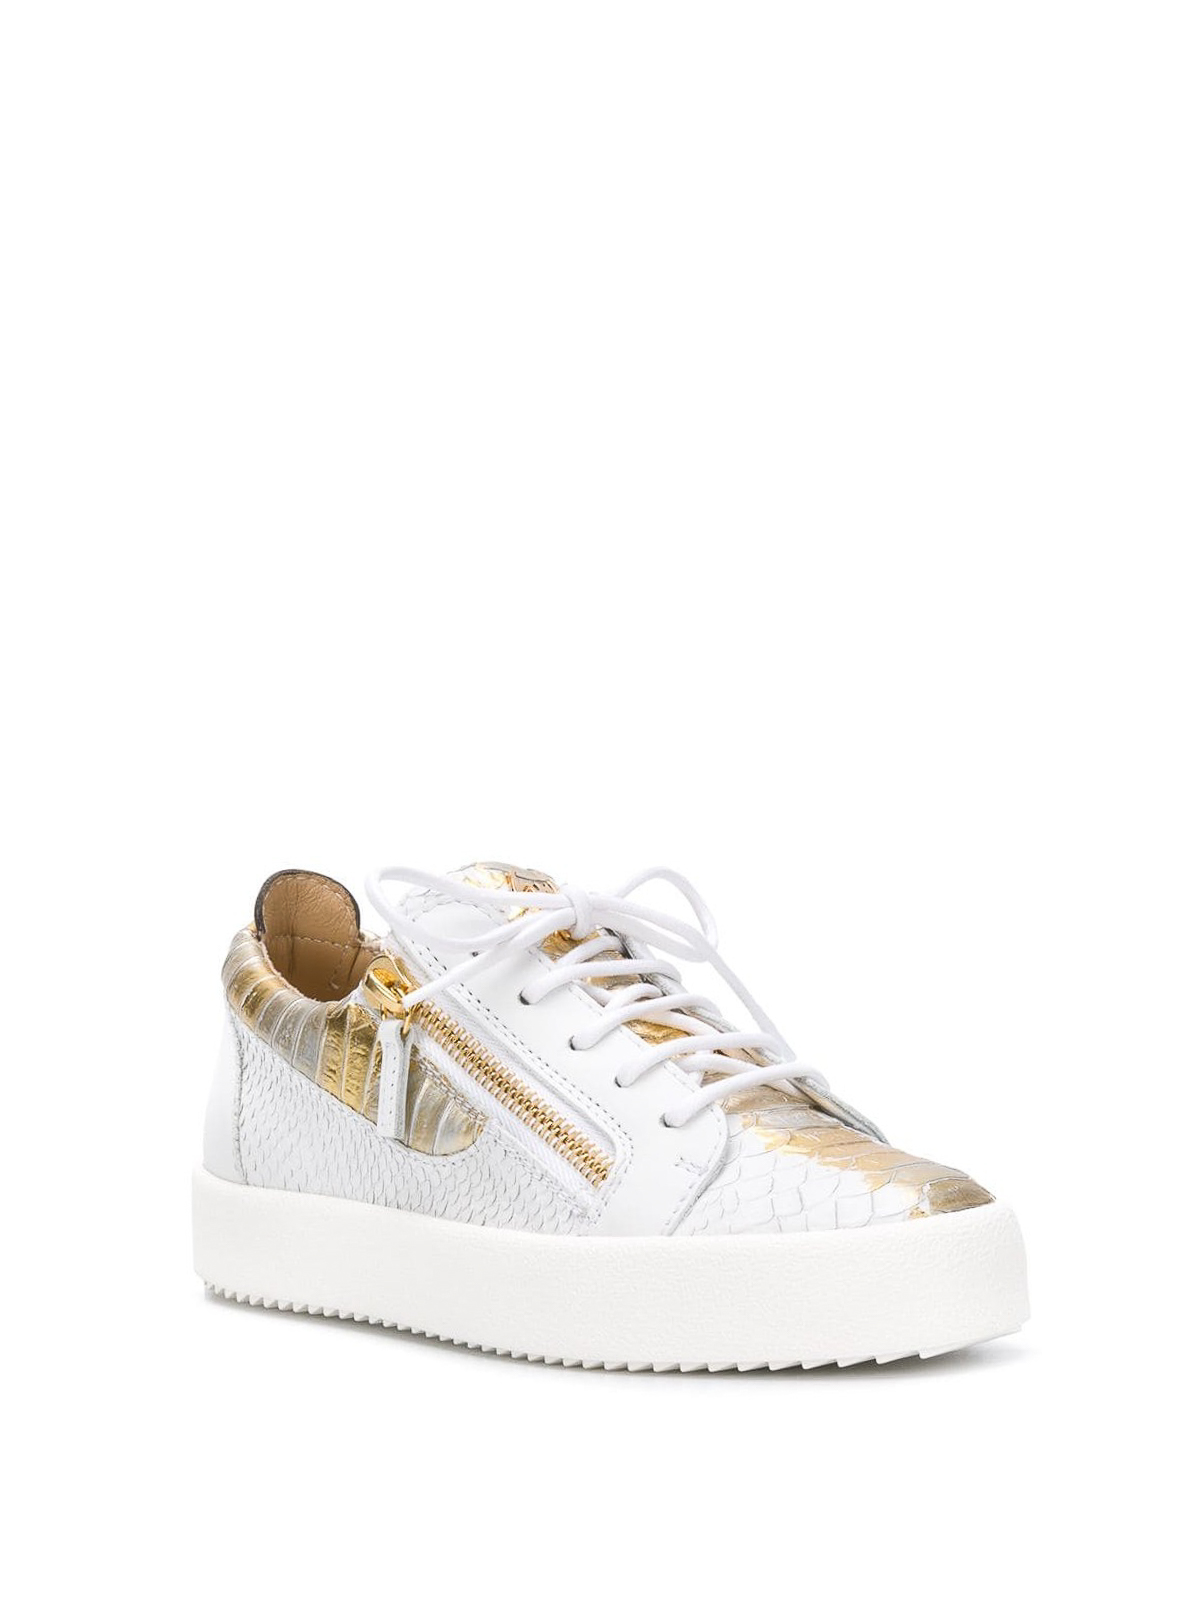 97565ff637e68 GIUSEPPE ZANOTTI: trainers online - May London reptile print leather  sneakers